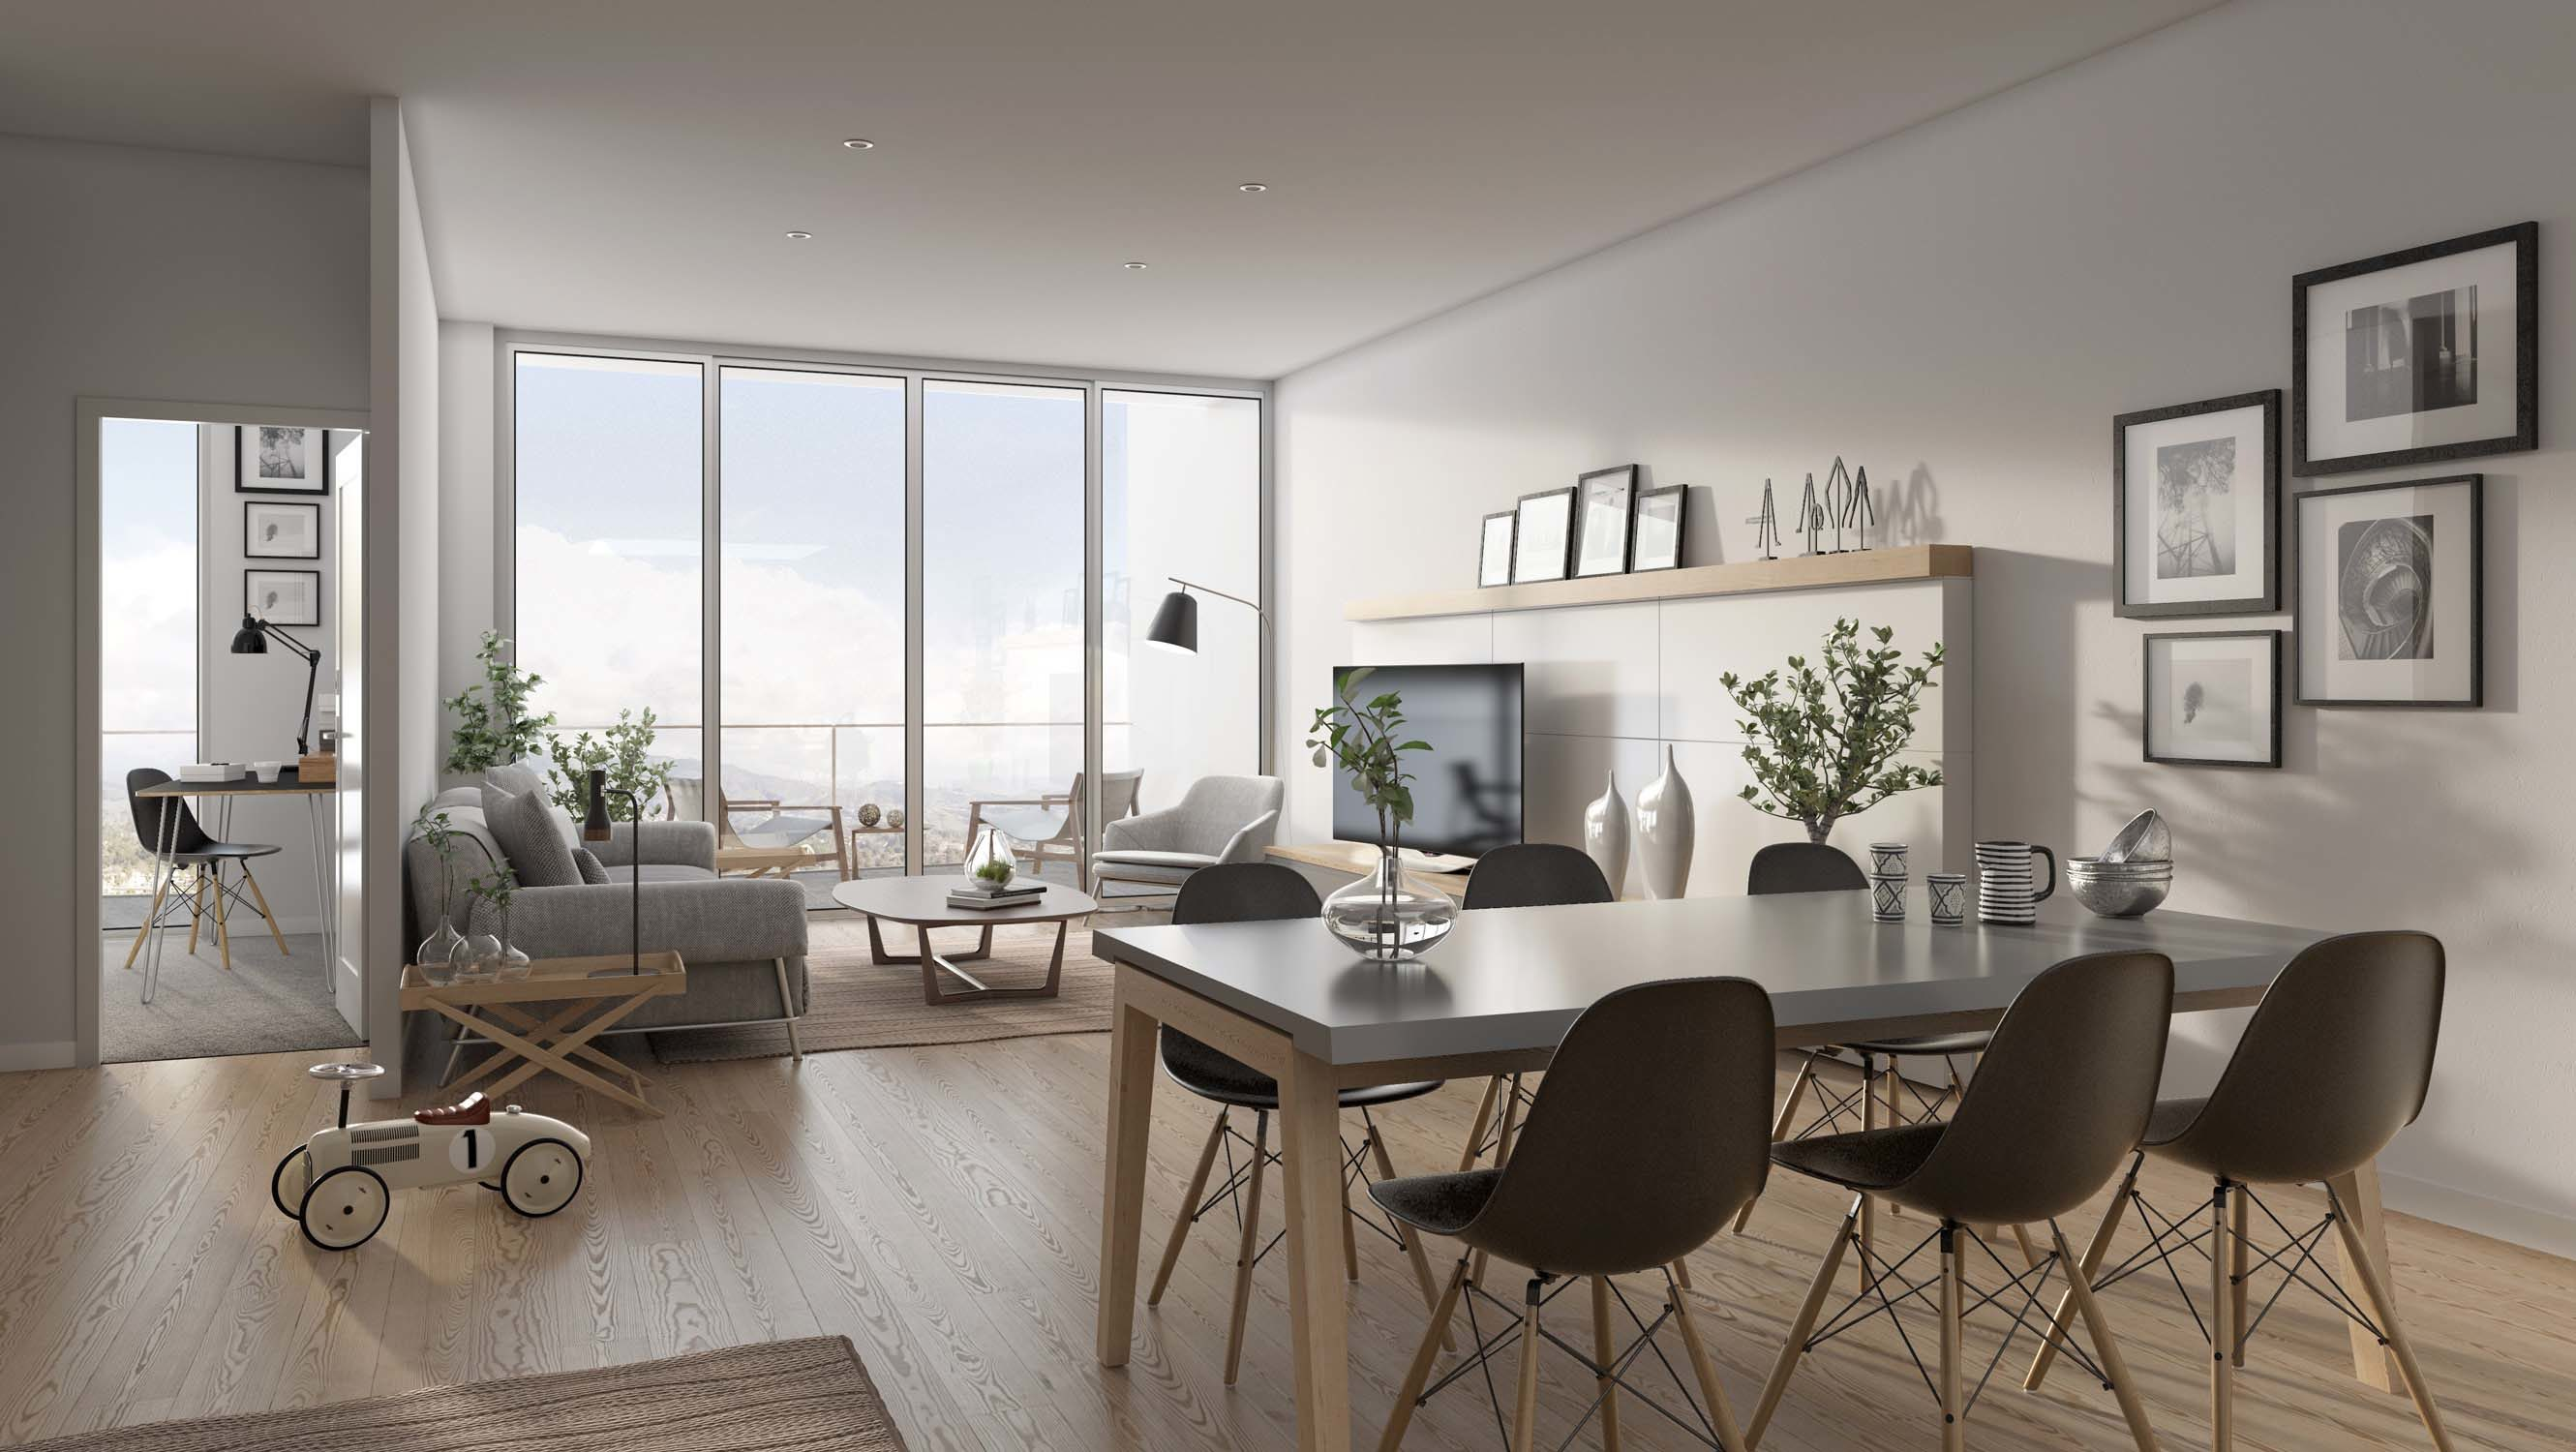 Apartment in Sidney – BV Real Estate, 2016